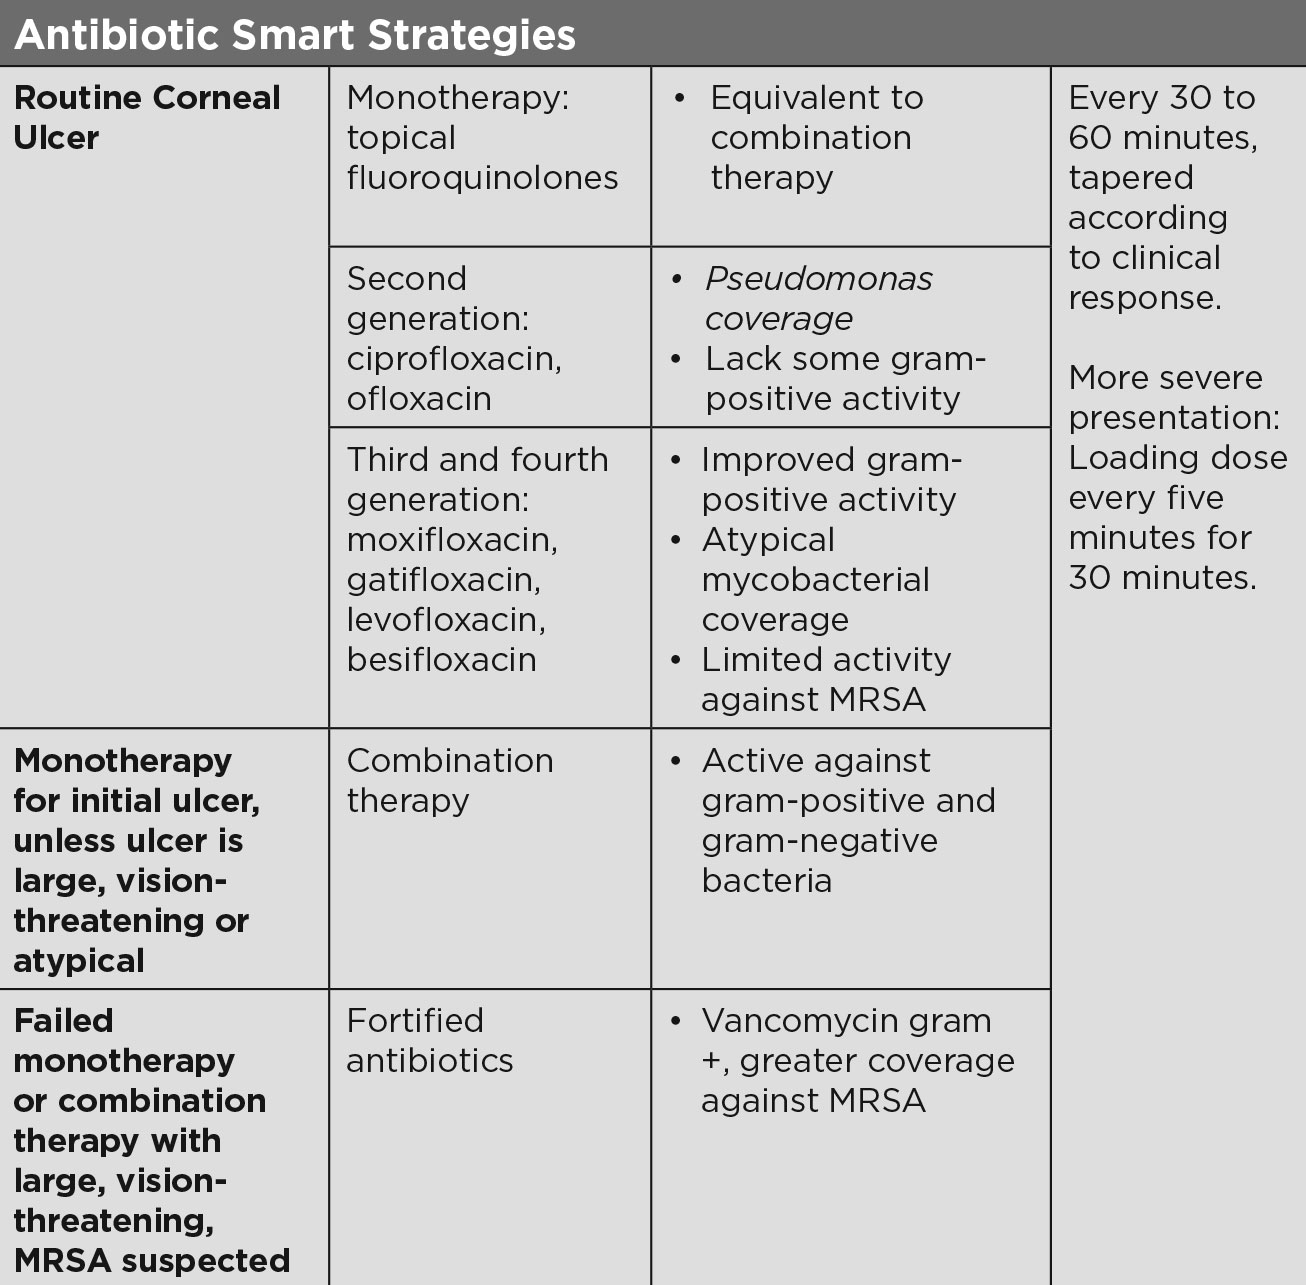 Antibiotic Smart Strategies